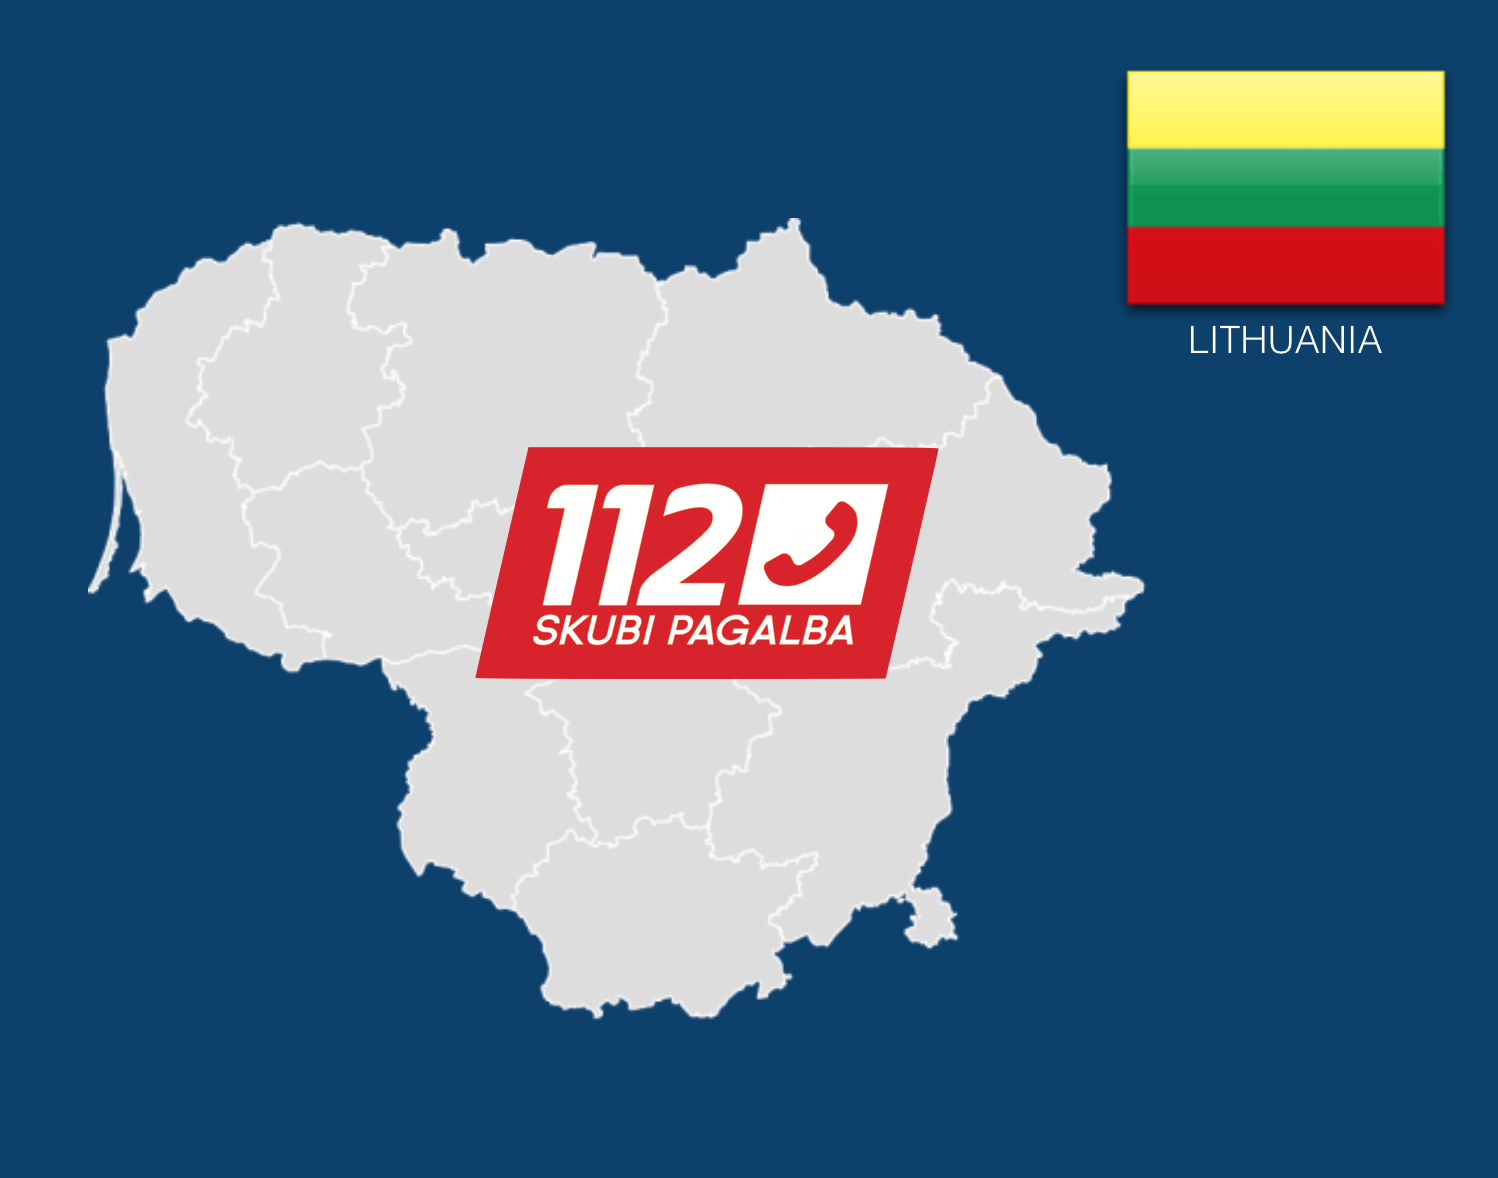 Dial 112 to Call an Ambulance in Lithuania